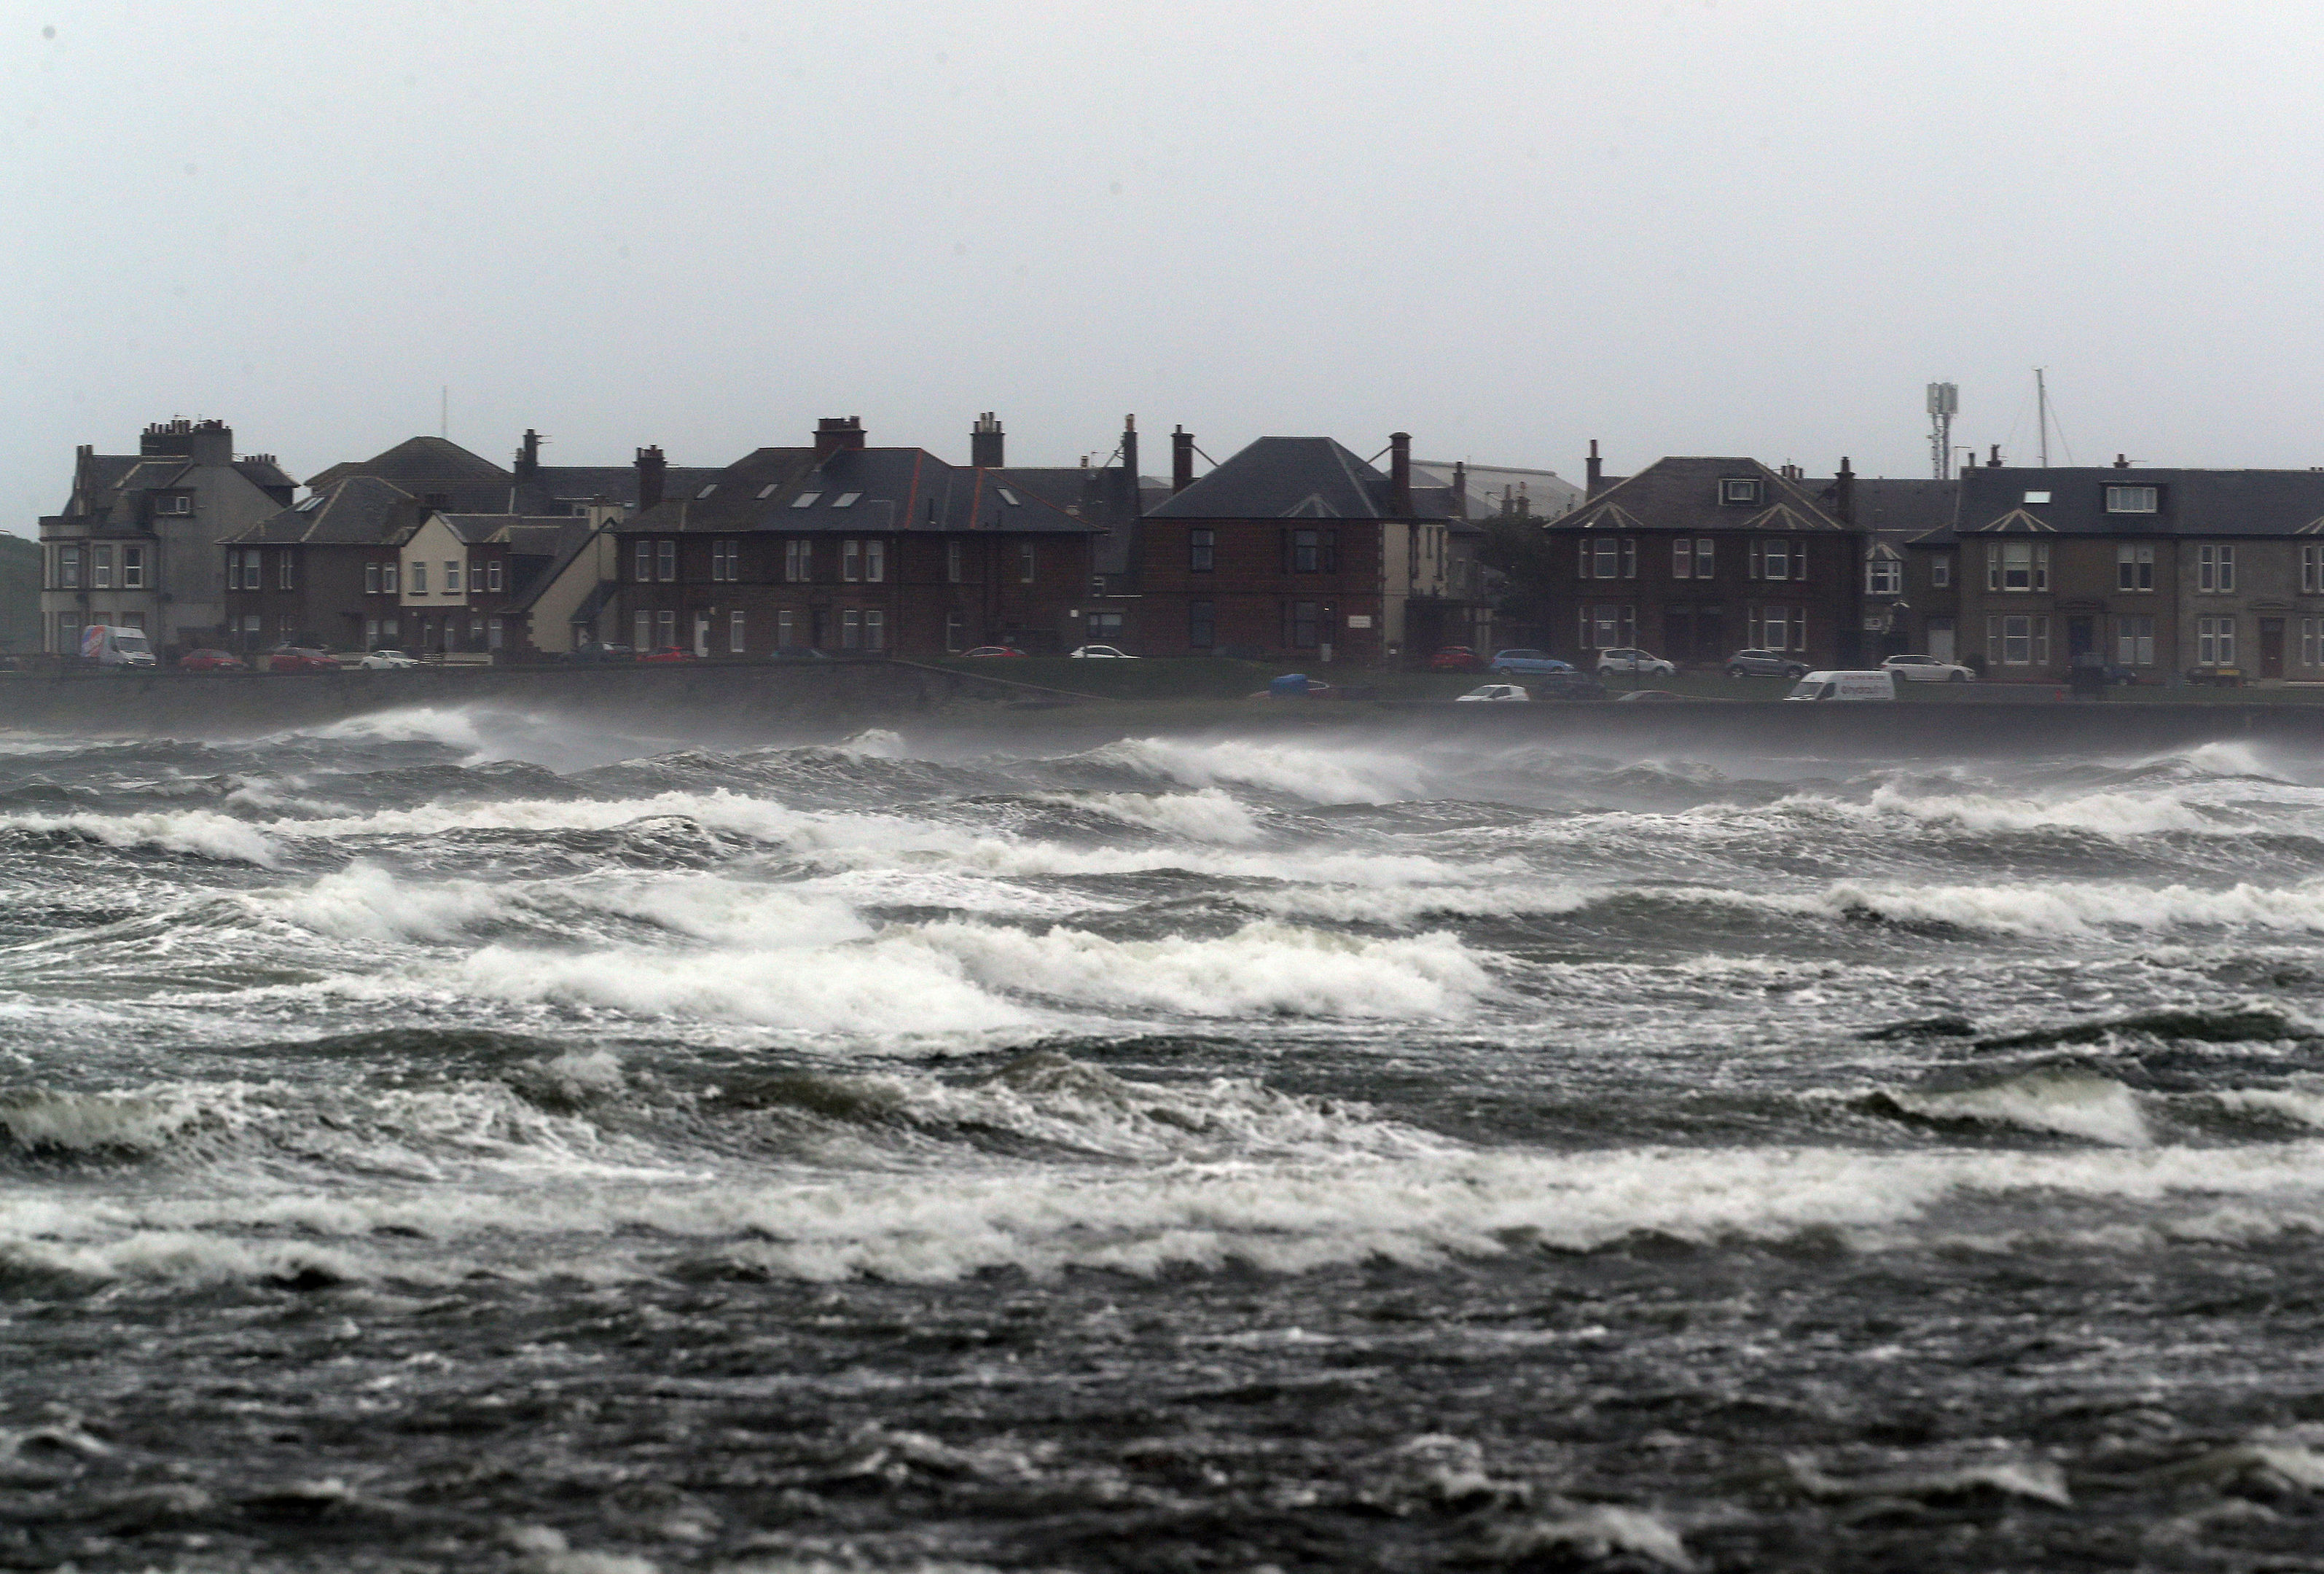 Stormy seas at Troon (Andrew Milligan/PA Wire)